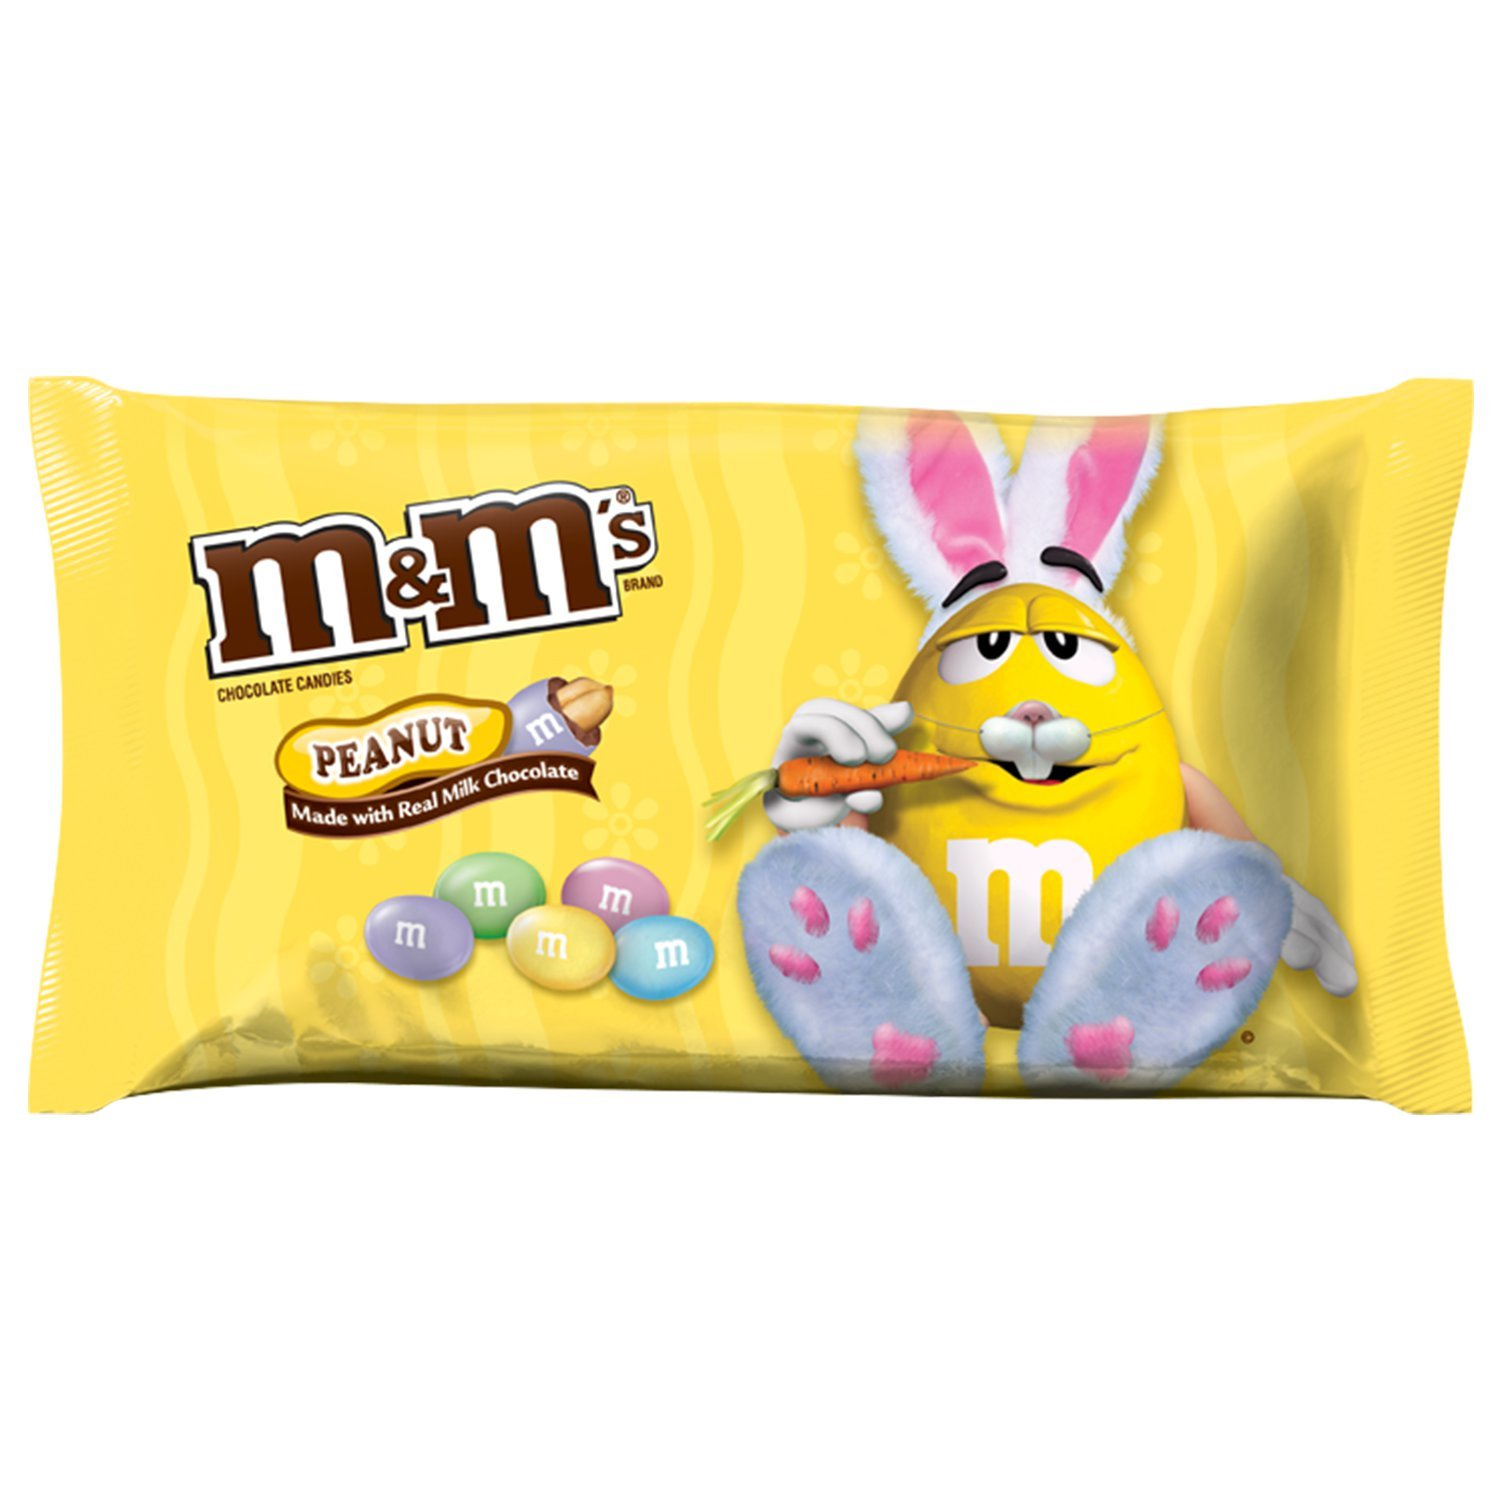 M&M'S Easter Peanut Chocolate Candy 11.4-Ounce Bag